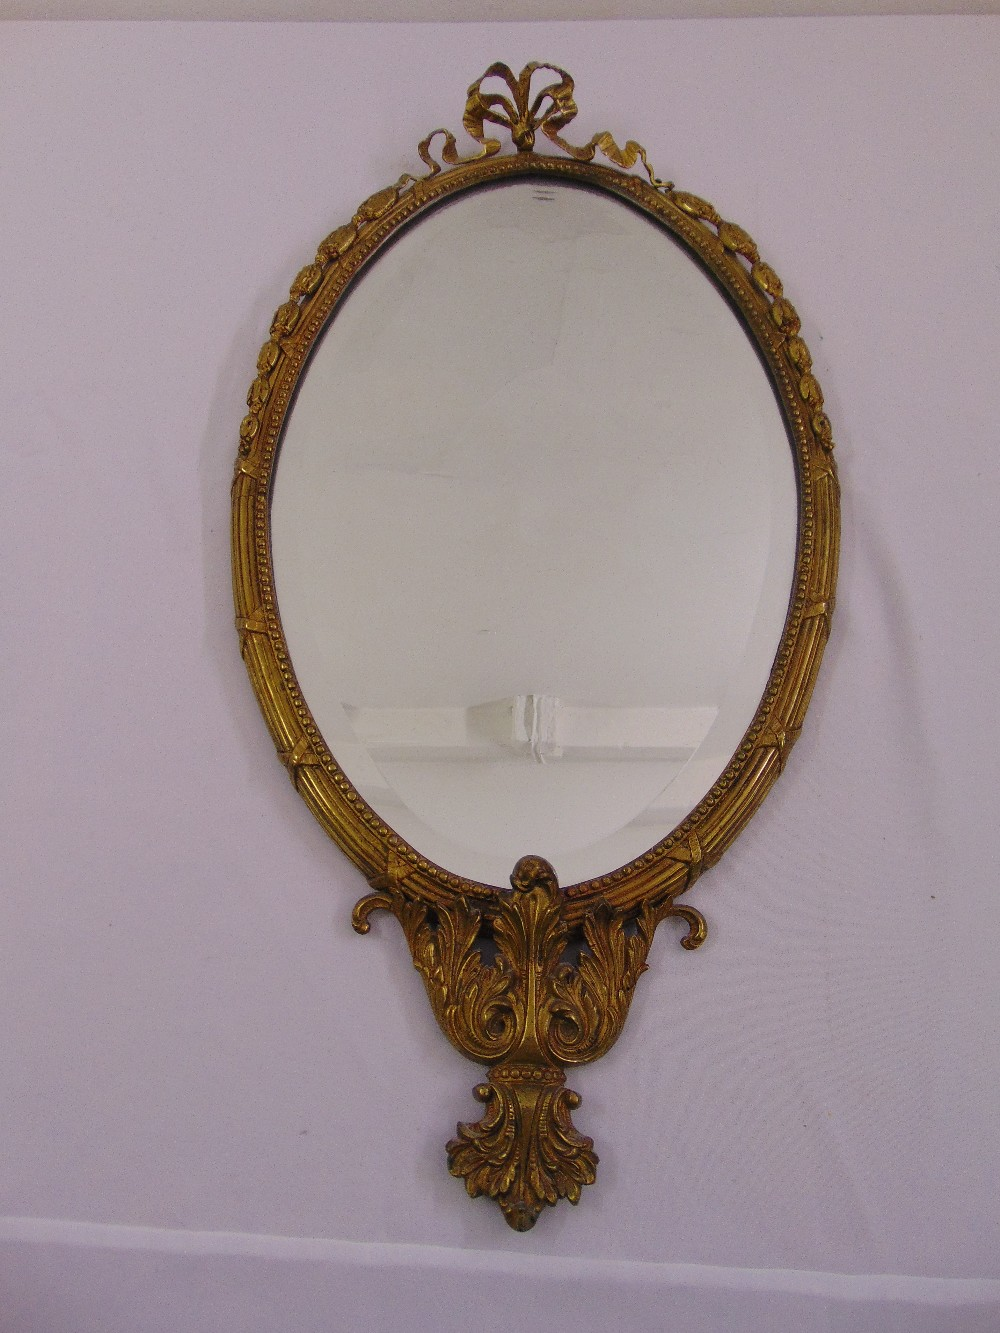 Lot 49 - An oval neo-classical style gilded metal bevelled edge wall mirror